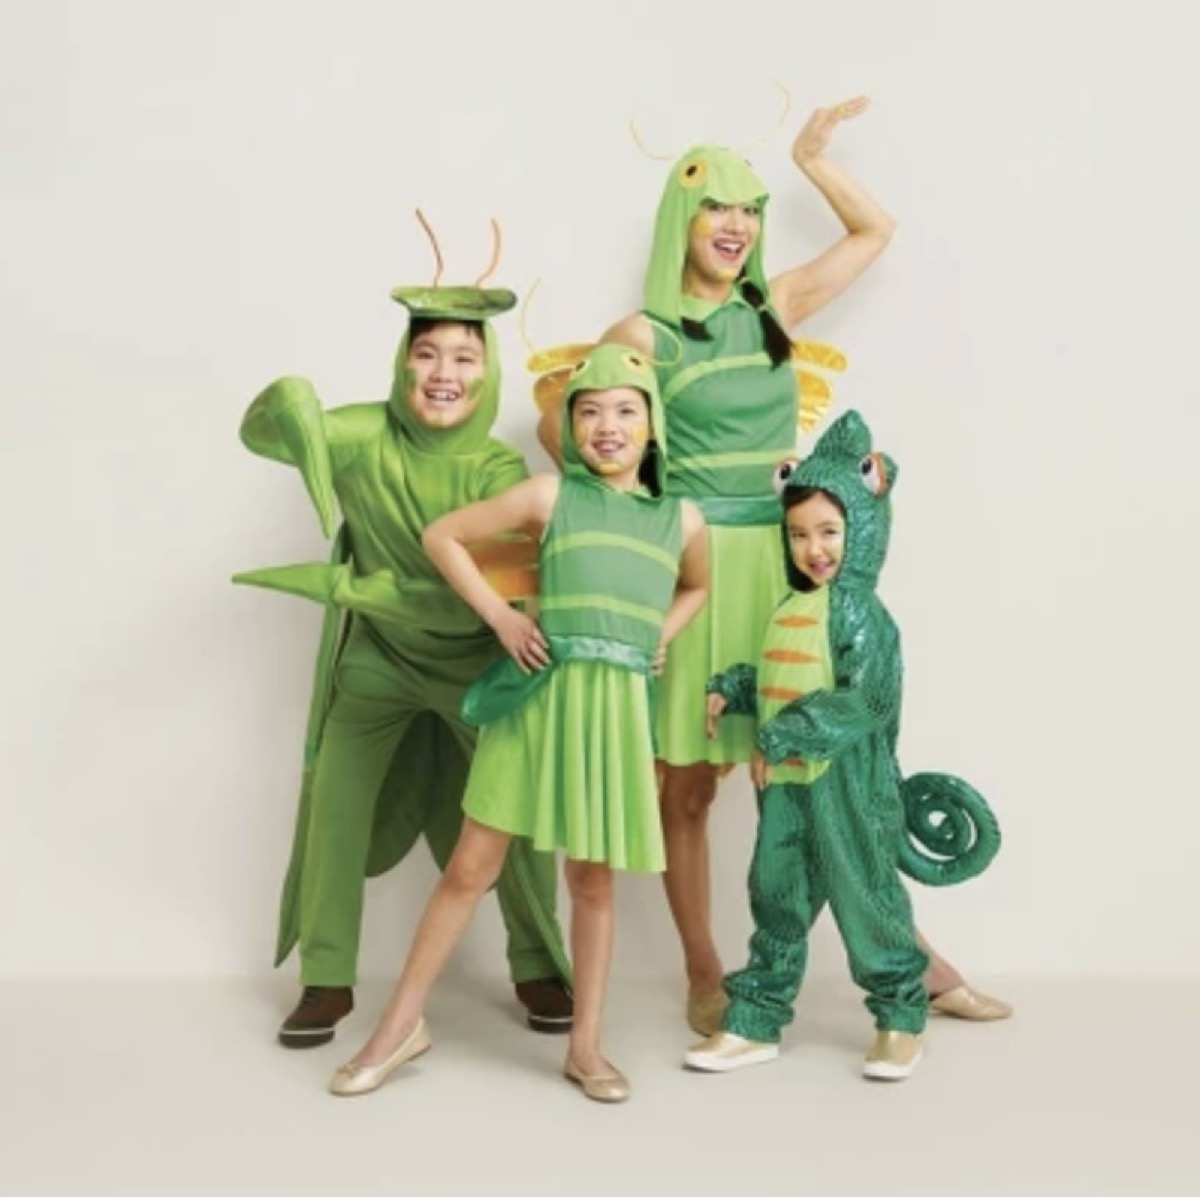 family dressed as green bugs, family halloween costumes